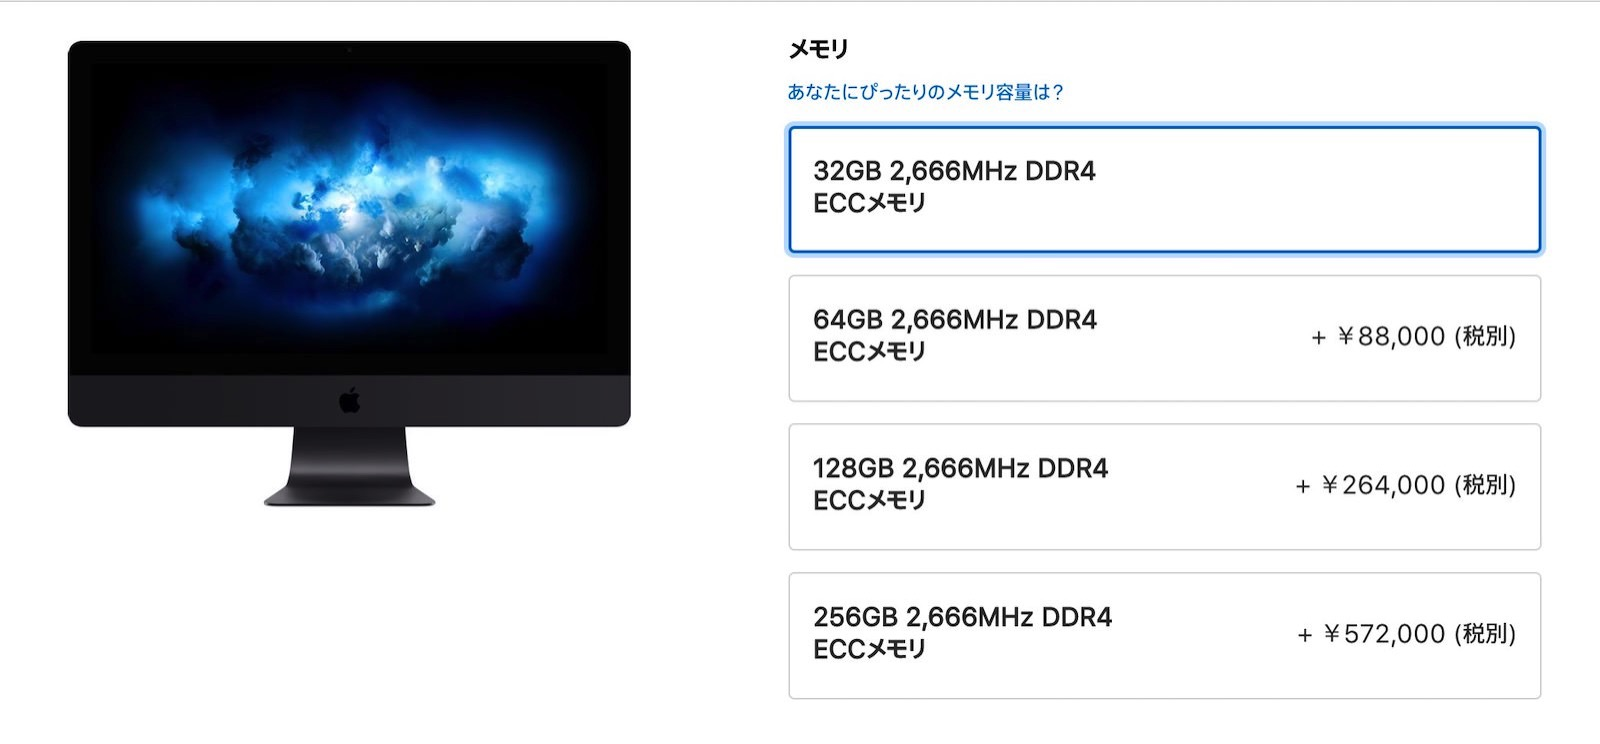 Imac pro ram option